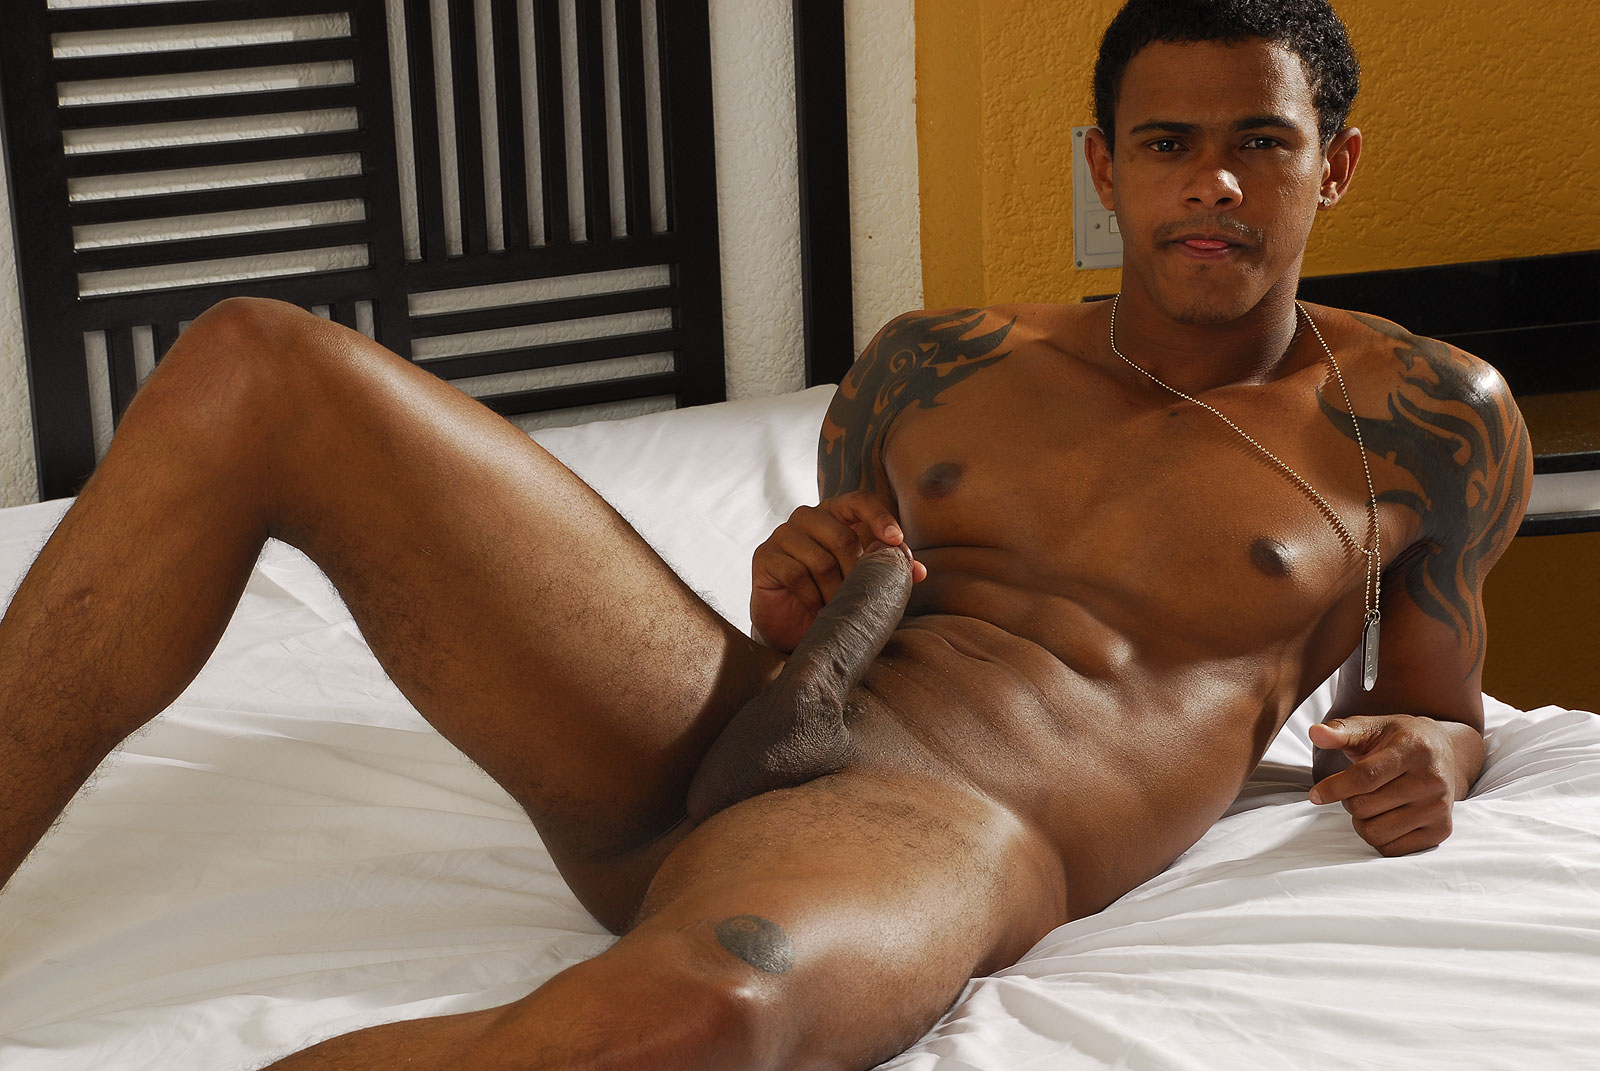 gay men porn escort gay brasil